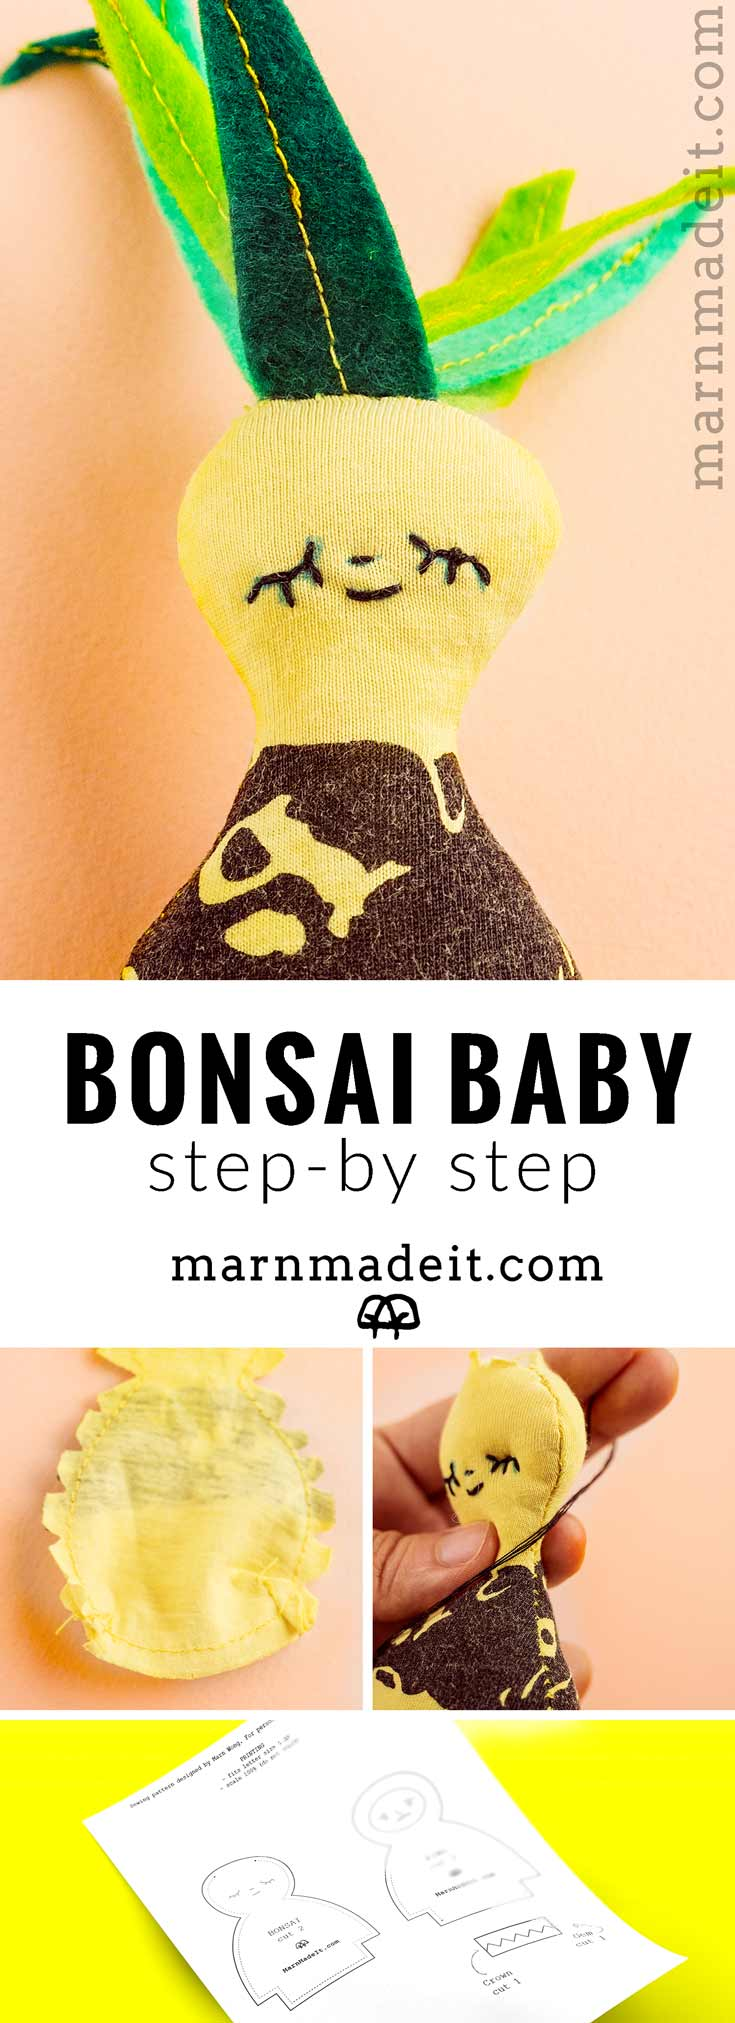 Who doesn't like plants & babies? This little bonsai baby plush is def gonna make any room brighter with its hand-stitched smile. Handmade from recycled tee, it is an upcycled project, kind to its own kind. Save this tutorial and free printable sewing pattern for download later. // Marn Made It